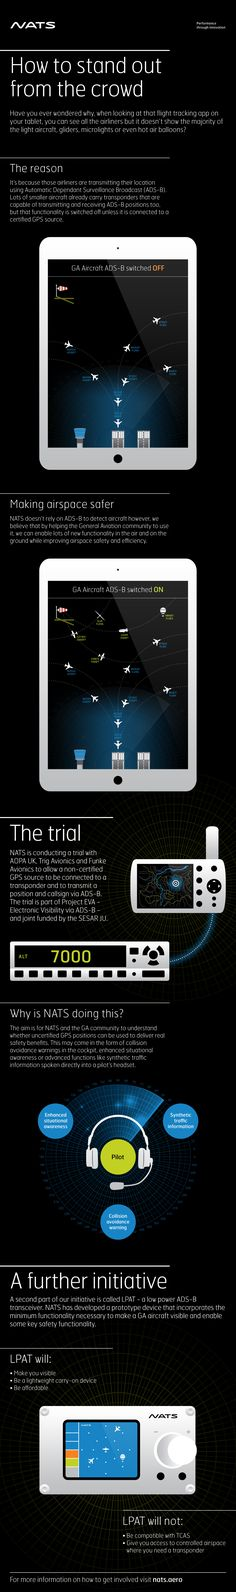 #NATS has started a trial promoting the use of ADS-B by General Aviation that encourages pilots to connect a transponder to a non-certified #GPS source. The #infographic takes you through the reasons behind the trial and why we've also invested in developing a low power ADS-B transceiver called #LPAT for #pilots who fly #aircraft not equipped with a #transponder. #aviation #generalaviation #ga